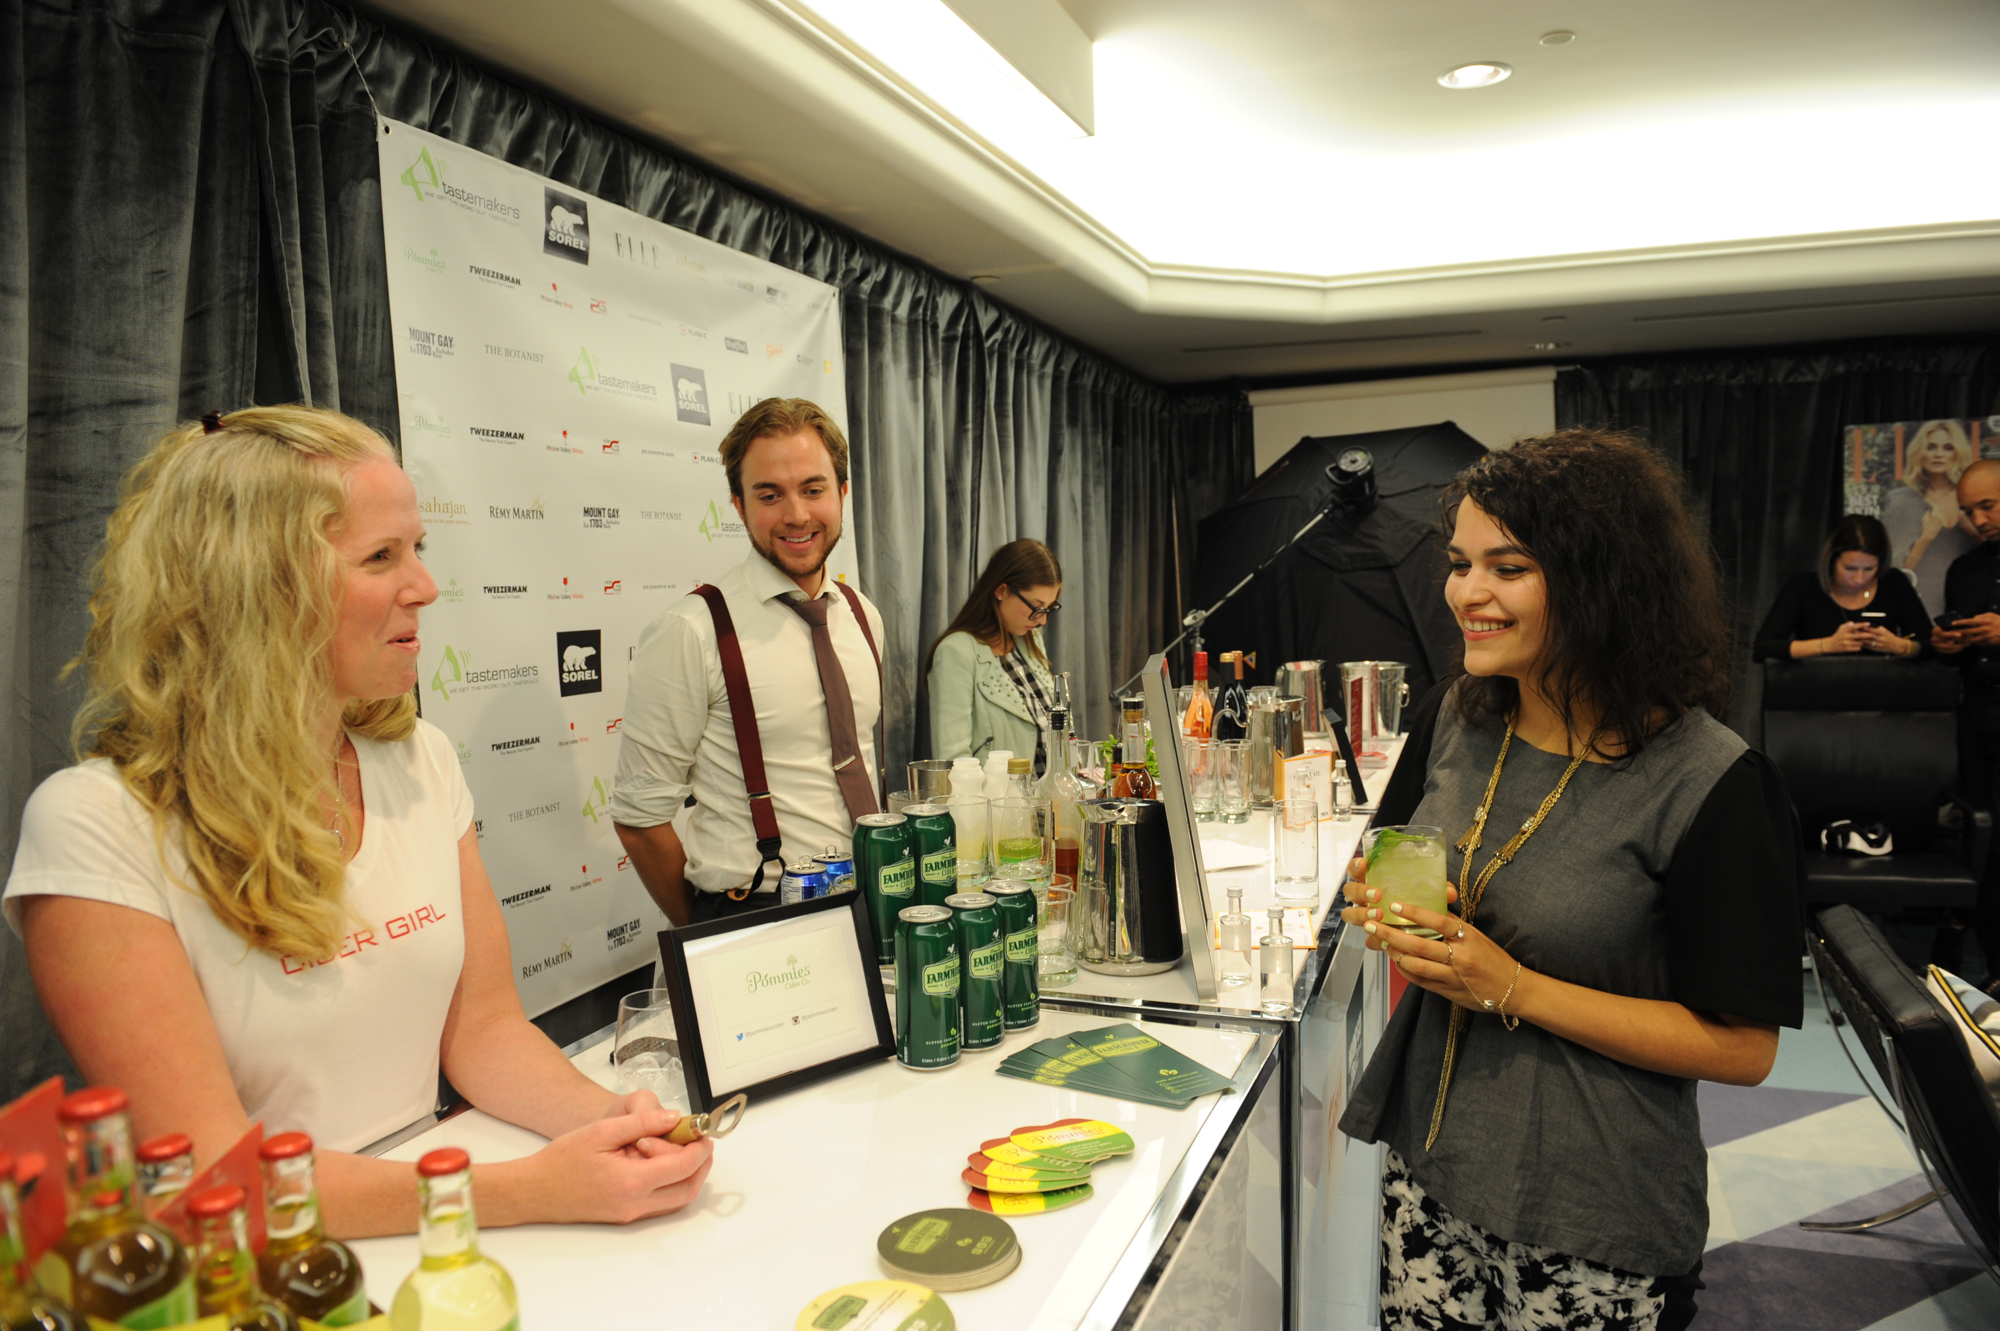 Tastemakers Lounge Image Feed 2015 oowered by Central Image Agency